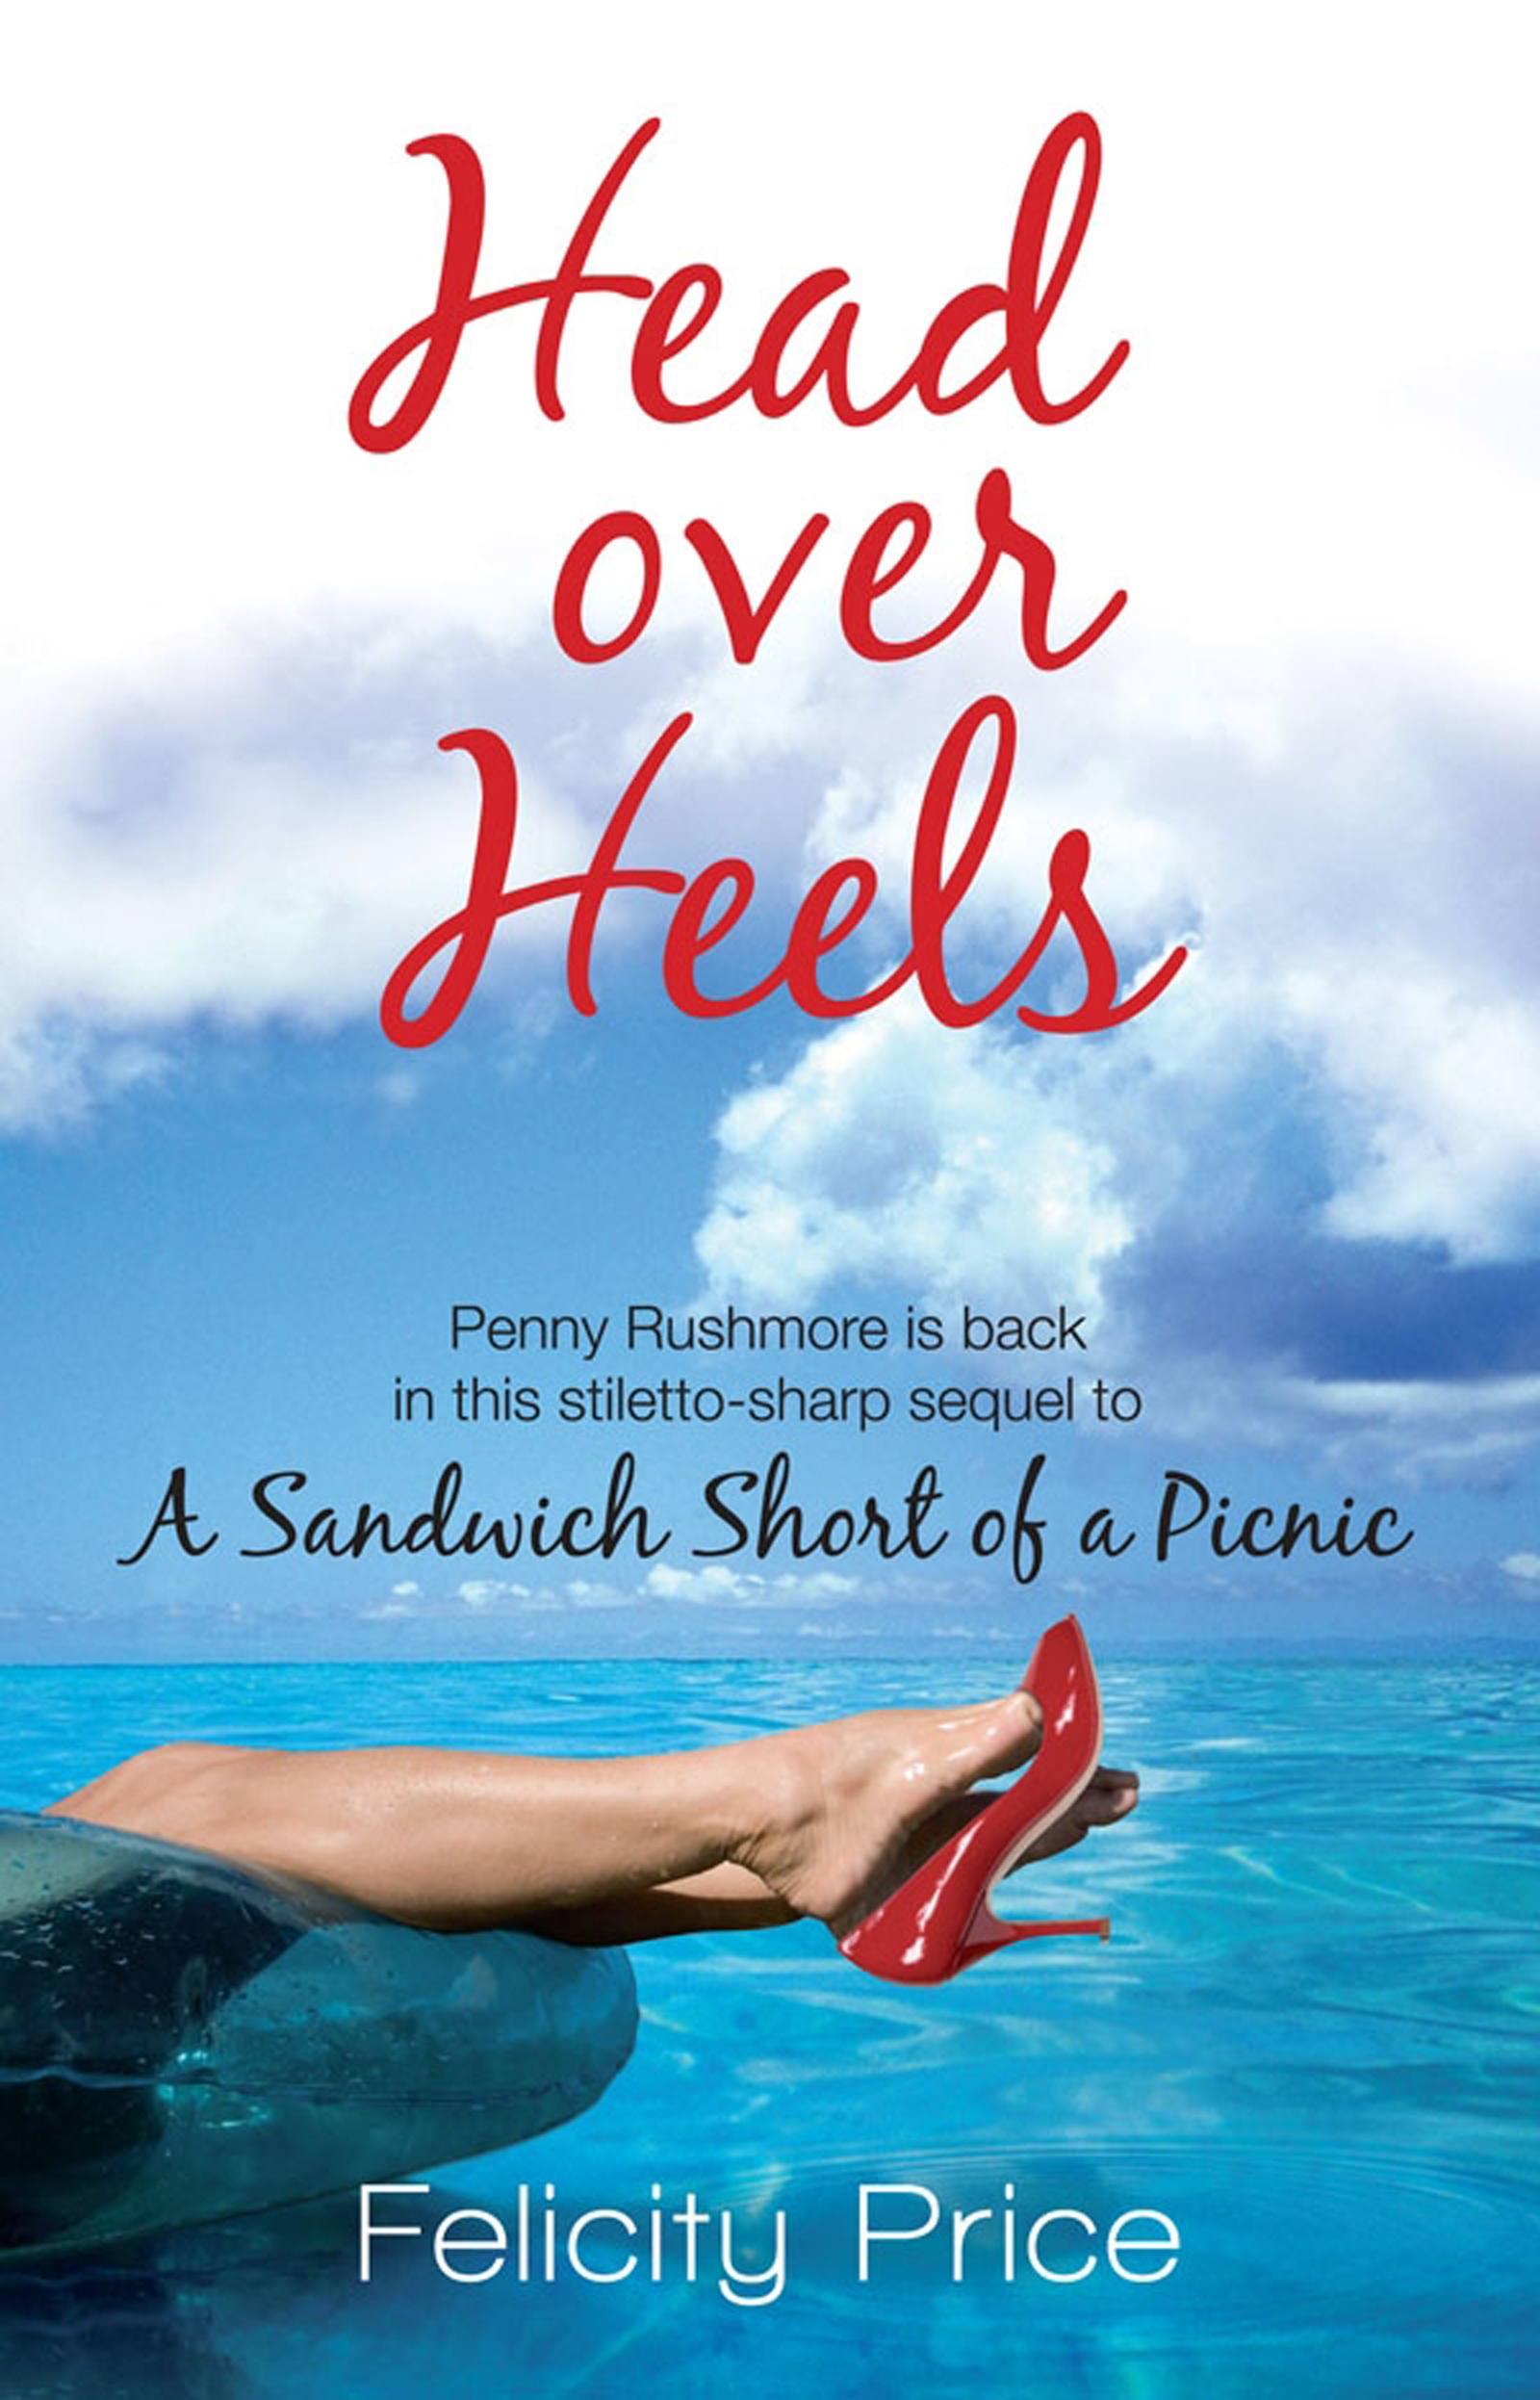 head over heels price felicity